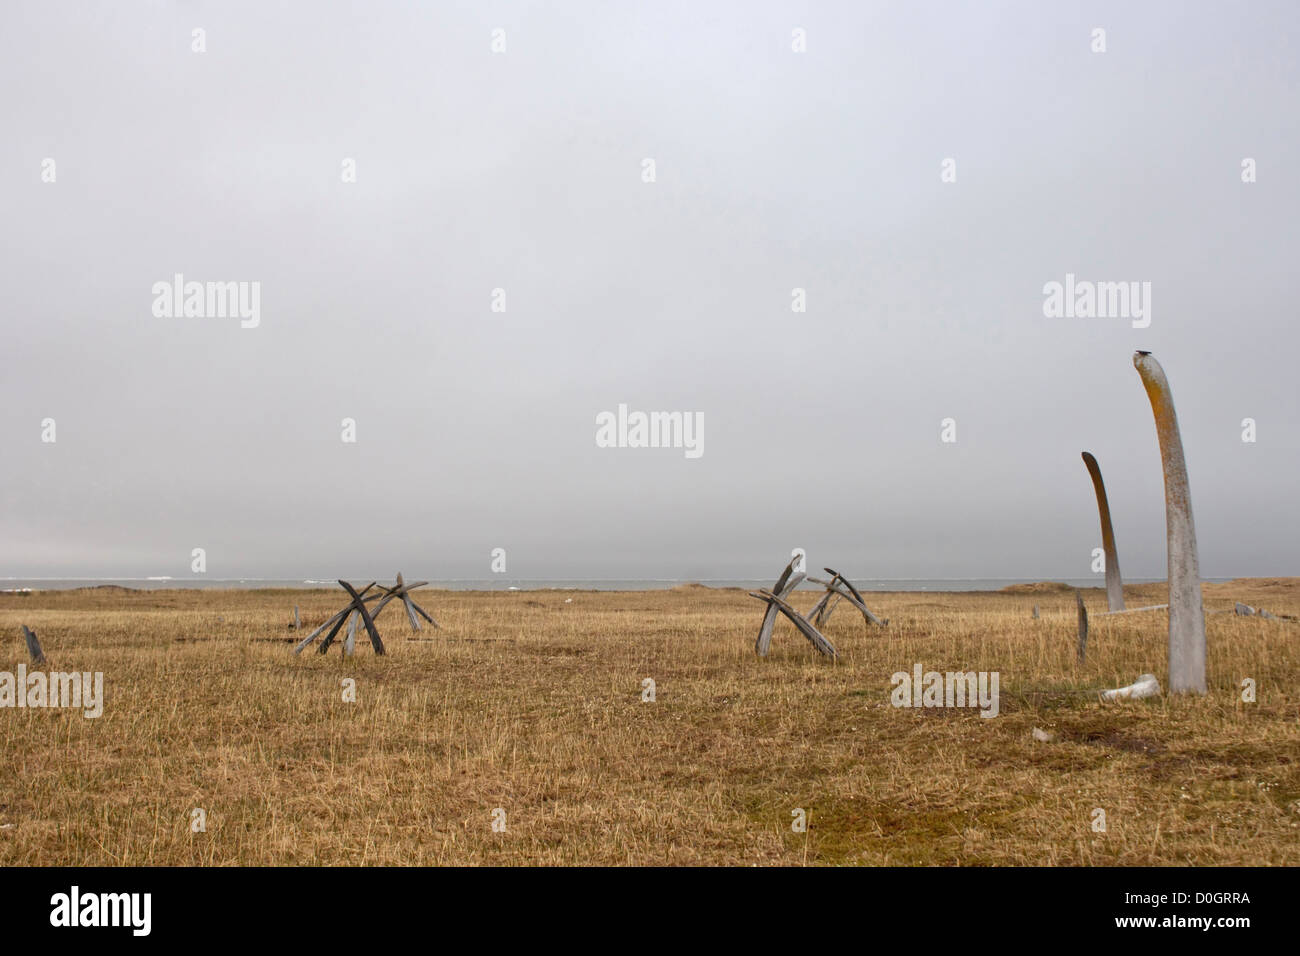 Inupiaq Graveyard Marked with Bowhead Whale Bones - Stock Image